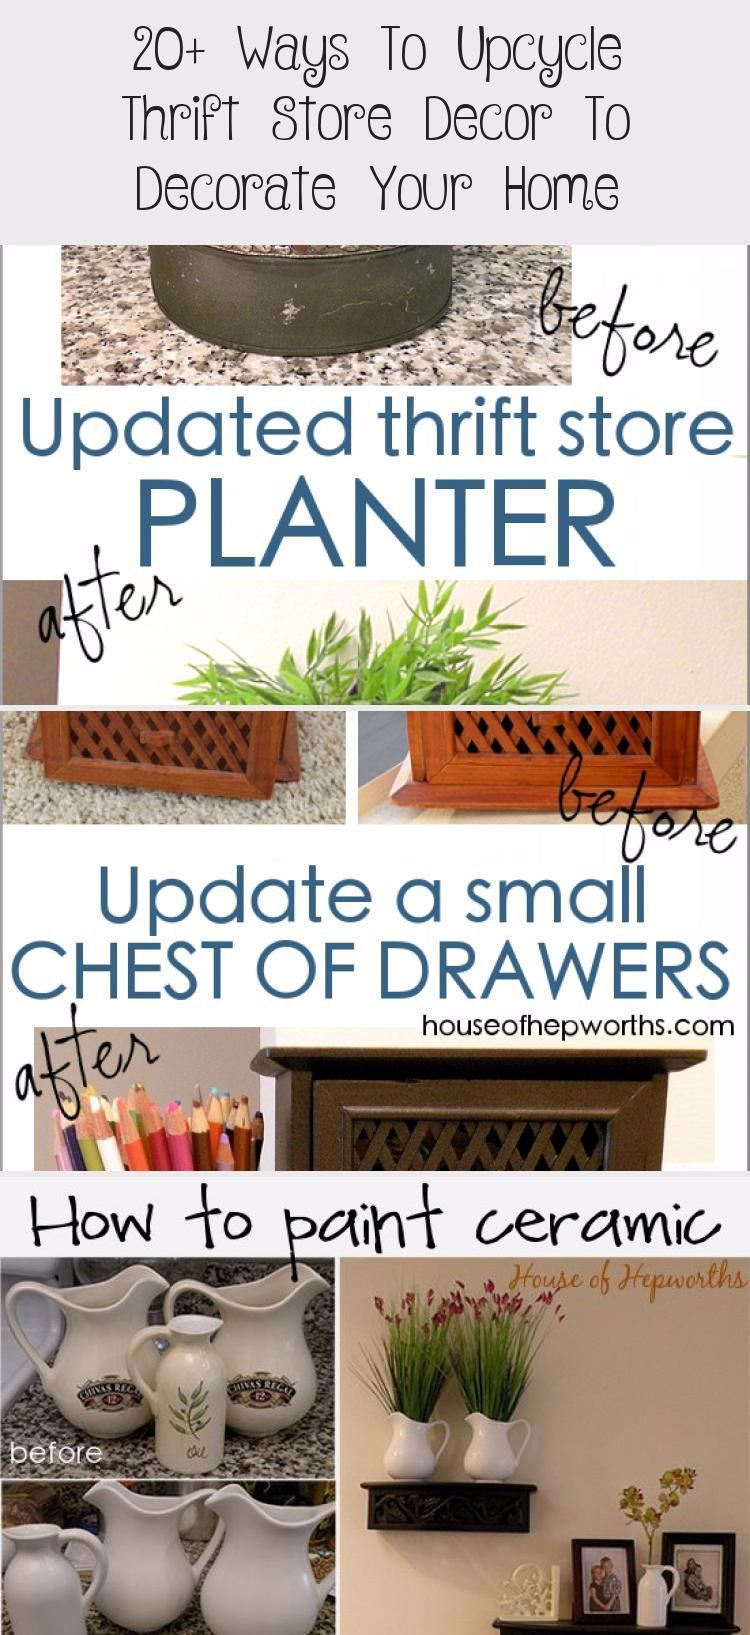 20+ ways to upcycle thrift store decor to decorate your home. Tons of great ideas for decor makeovers. www.houseofhepworths.com #HomeDecorDIYRecycle